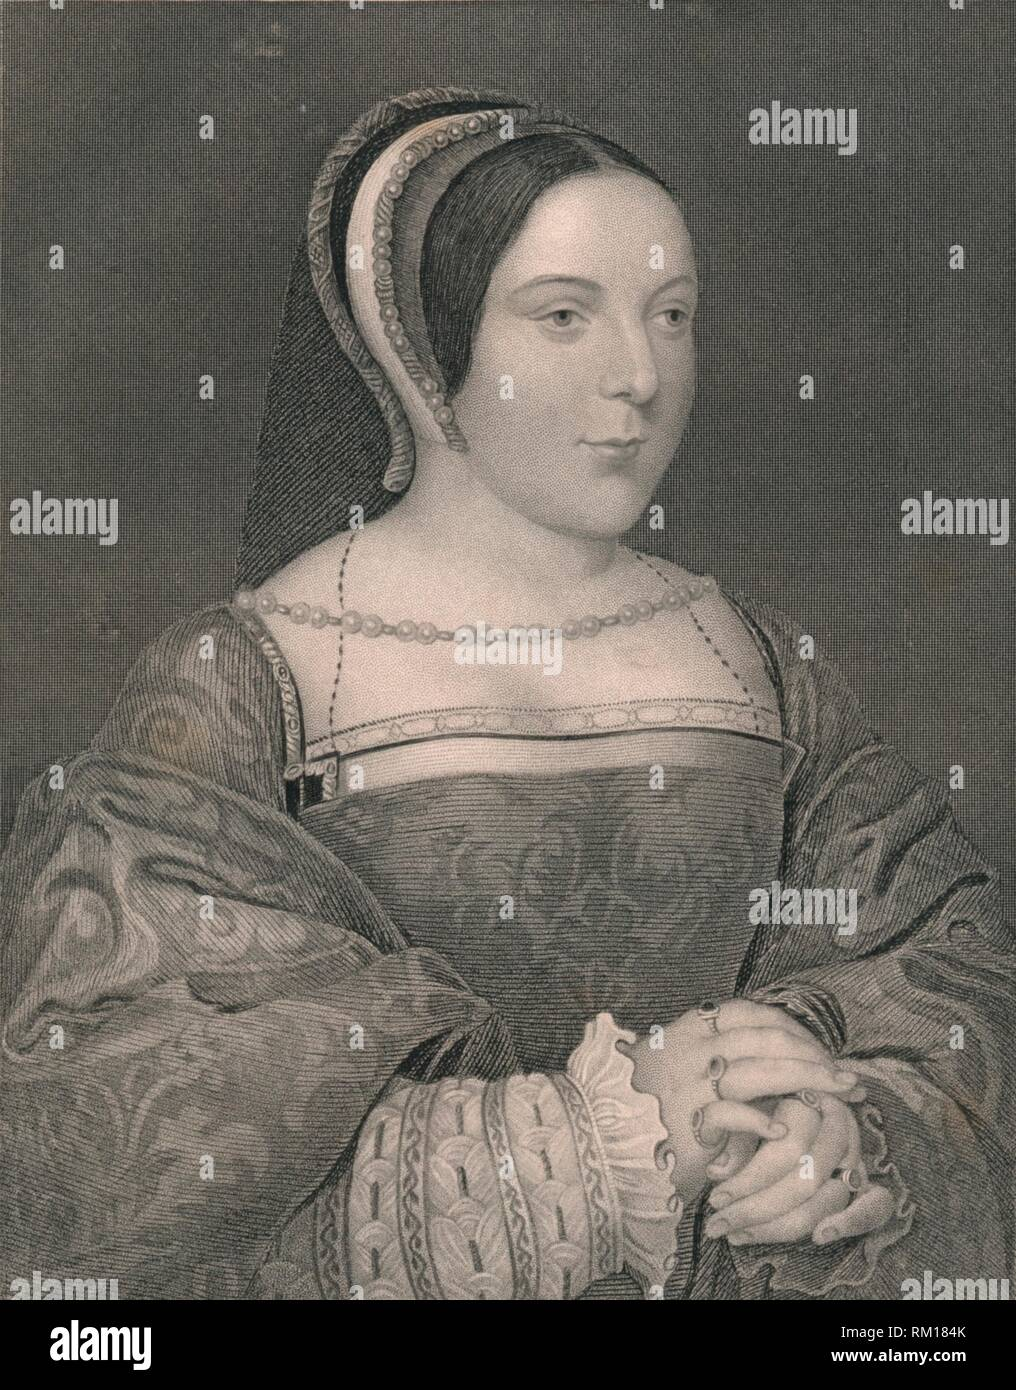 'Margaret Tudor. Queen of Scotland', c1525, (early-mid 19th century). Portrait of Marie d'Assigny, Madame de Canaples (1502-1558, wife of Jean de Créquy), dressed as Margaret Tudor (1489-1541, queen consort of King James IV of Scotland). Engraving after a painting made c1525, the year that Marie d'Assigny, a lady at the court of King François I of France, married Jean de Crequi, sire de Canaples. Painting in the collection of the National Galleries of Scotland, Edinburgh. [The London Printing and Publishing Company, London] - Stock Image